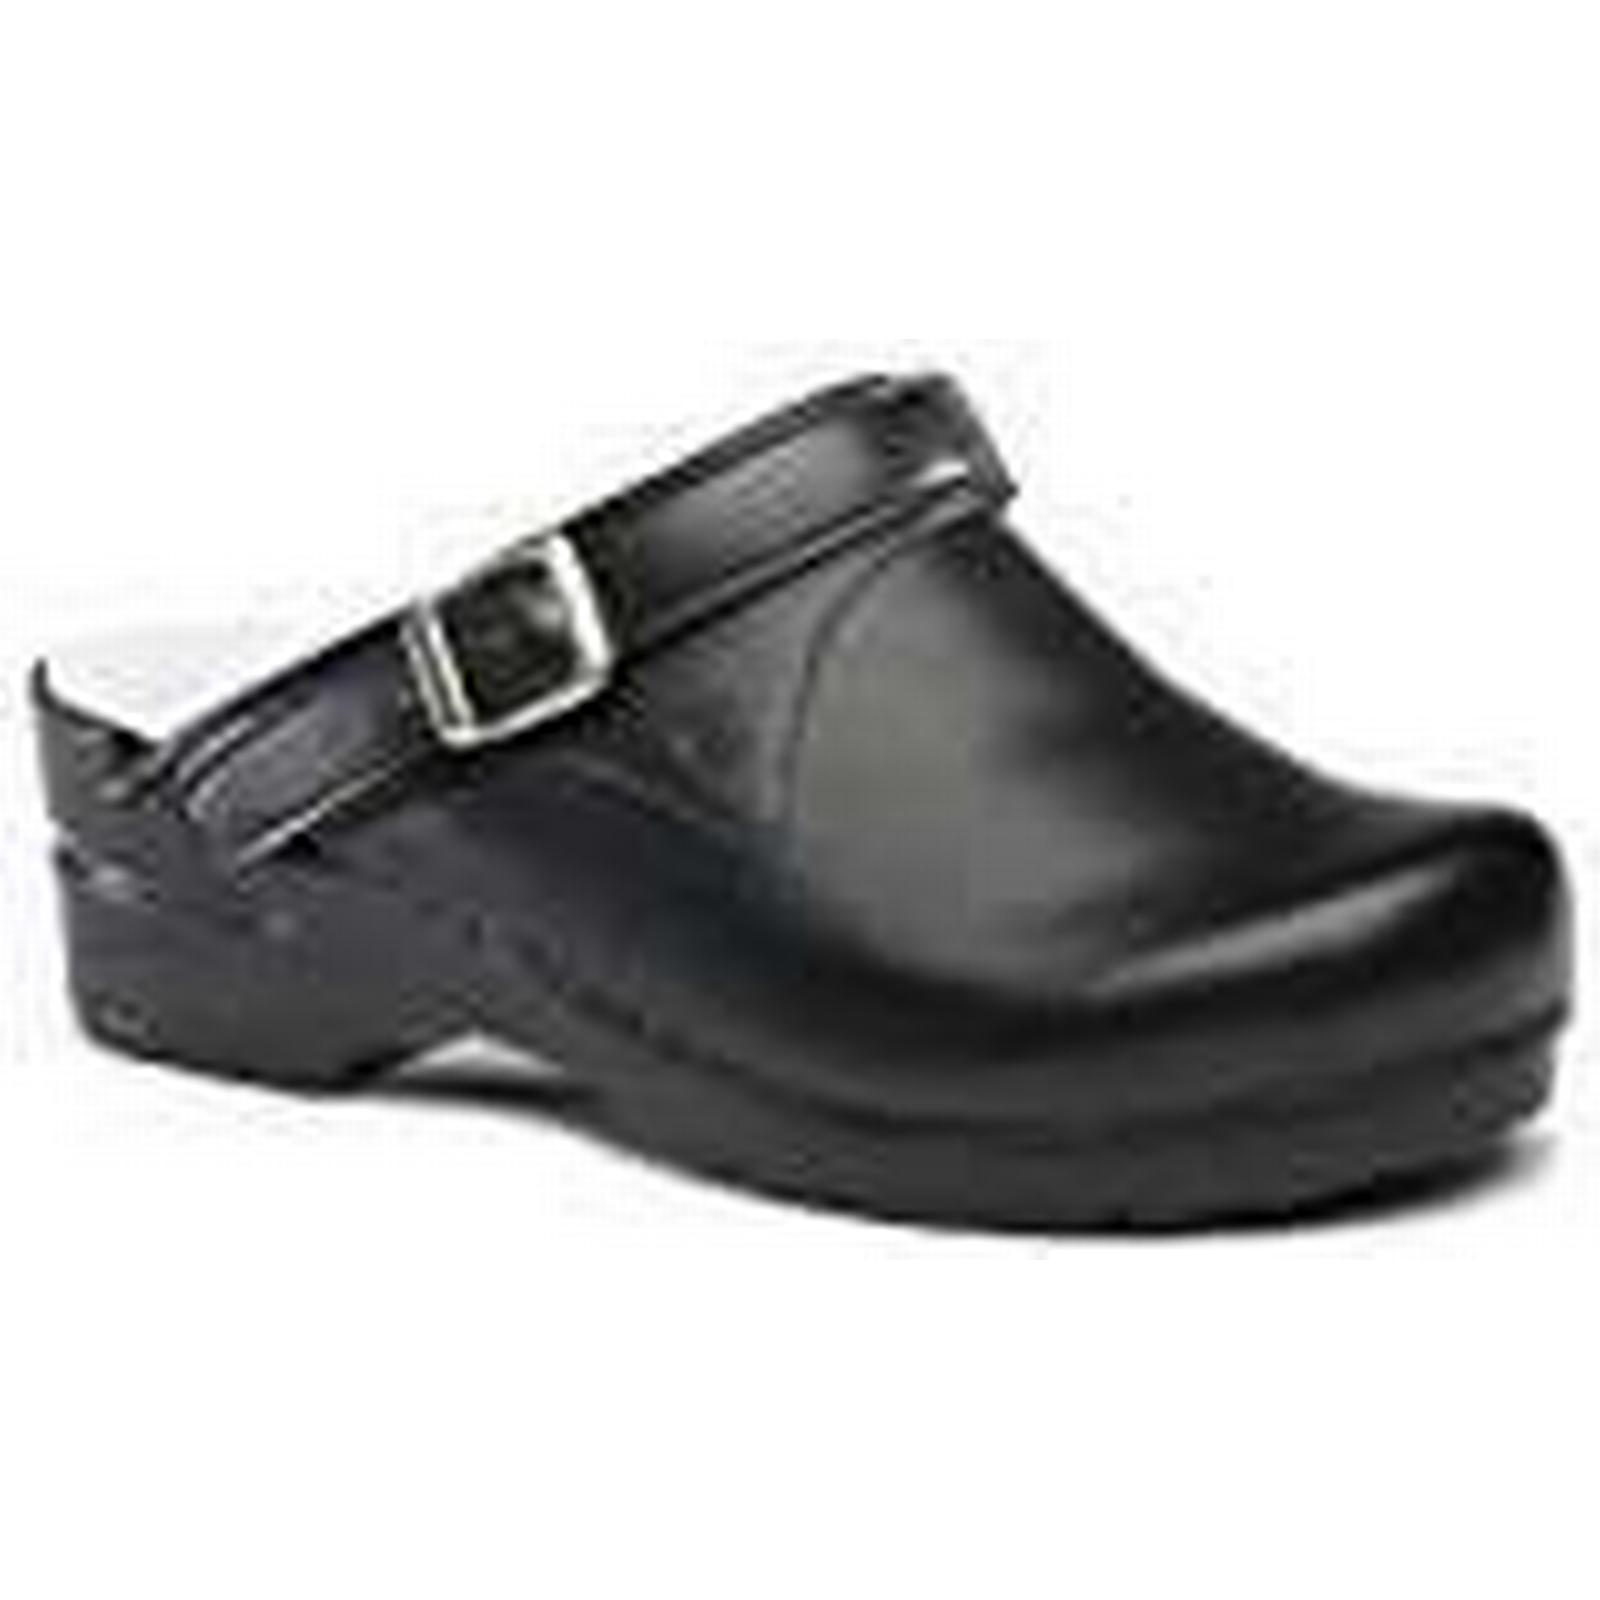 Toffeln 0723-42 Strap, Footwear, FlexiKlog with Back Strap, 0723-42 Size 42/UK 8, Black 02474e